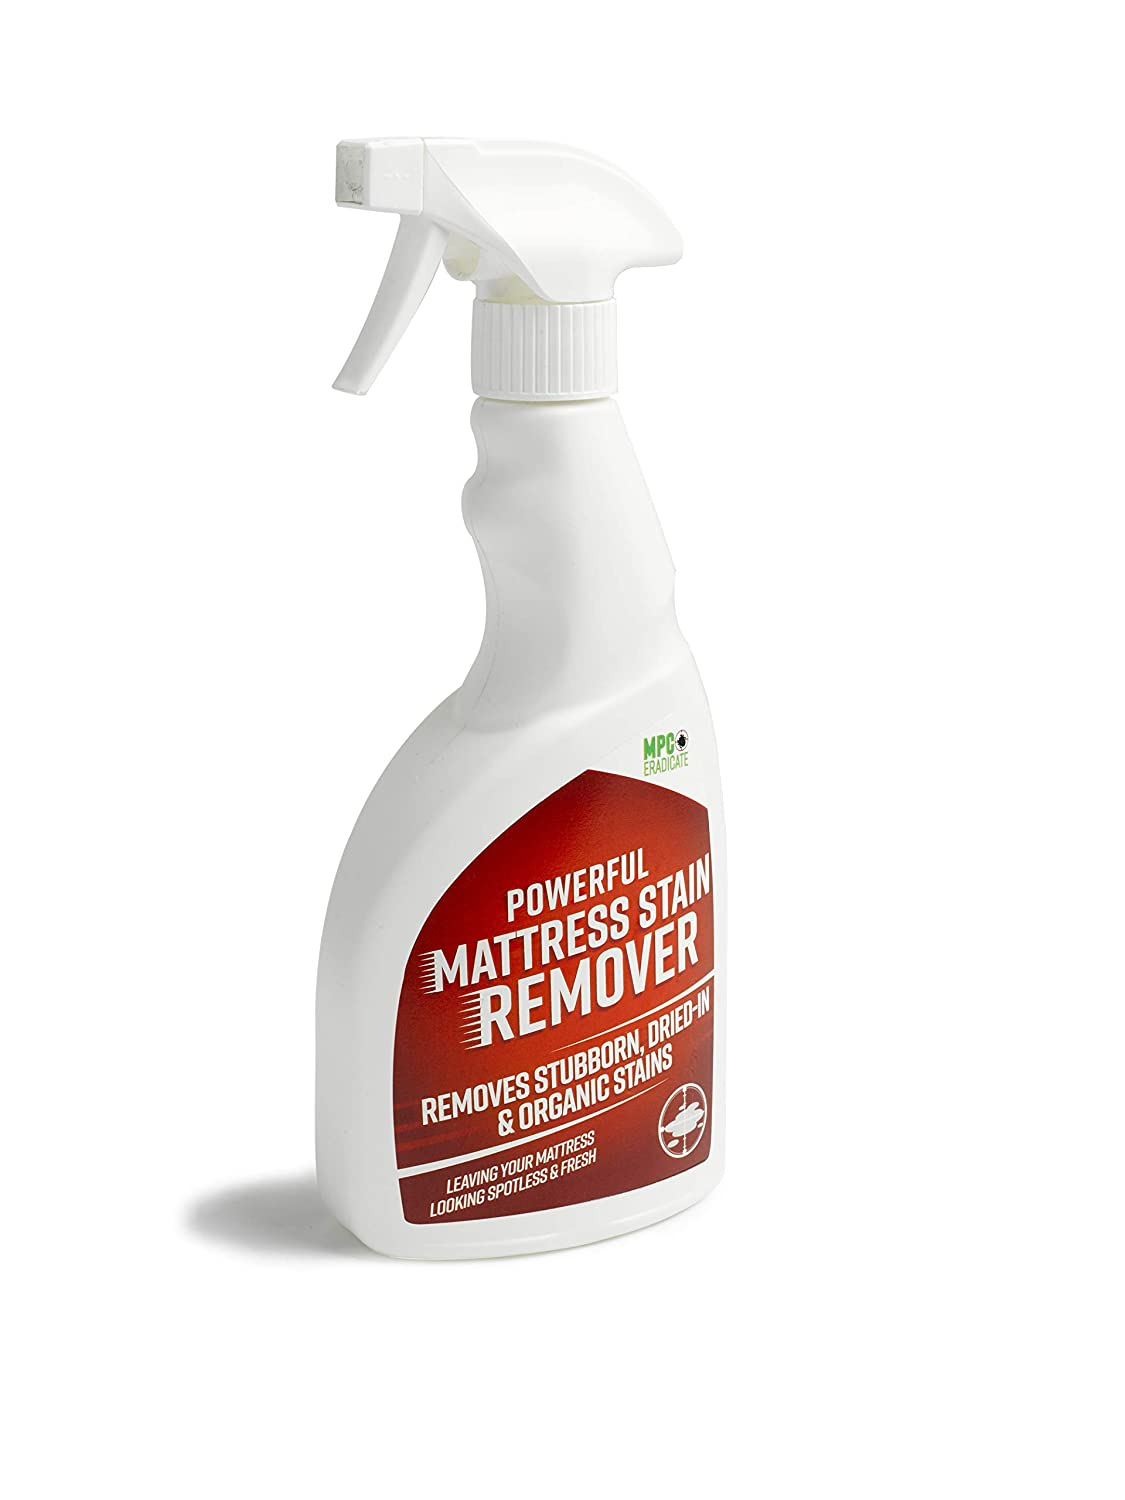 MPC ERADICATE Powerful Mattress Stain Remover Urine Vomit Blood Pet Faeces Bed Cleaner Freshner Millennium Pest Control